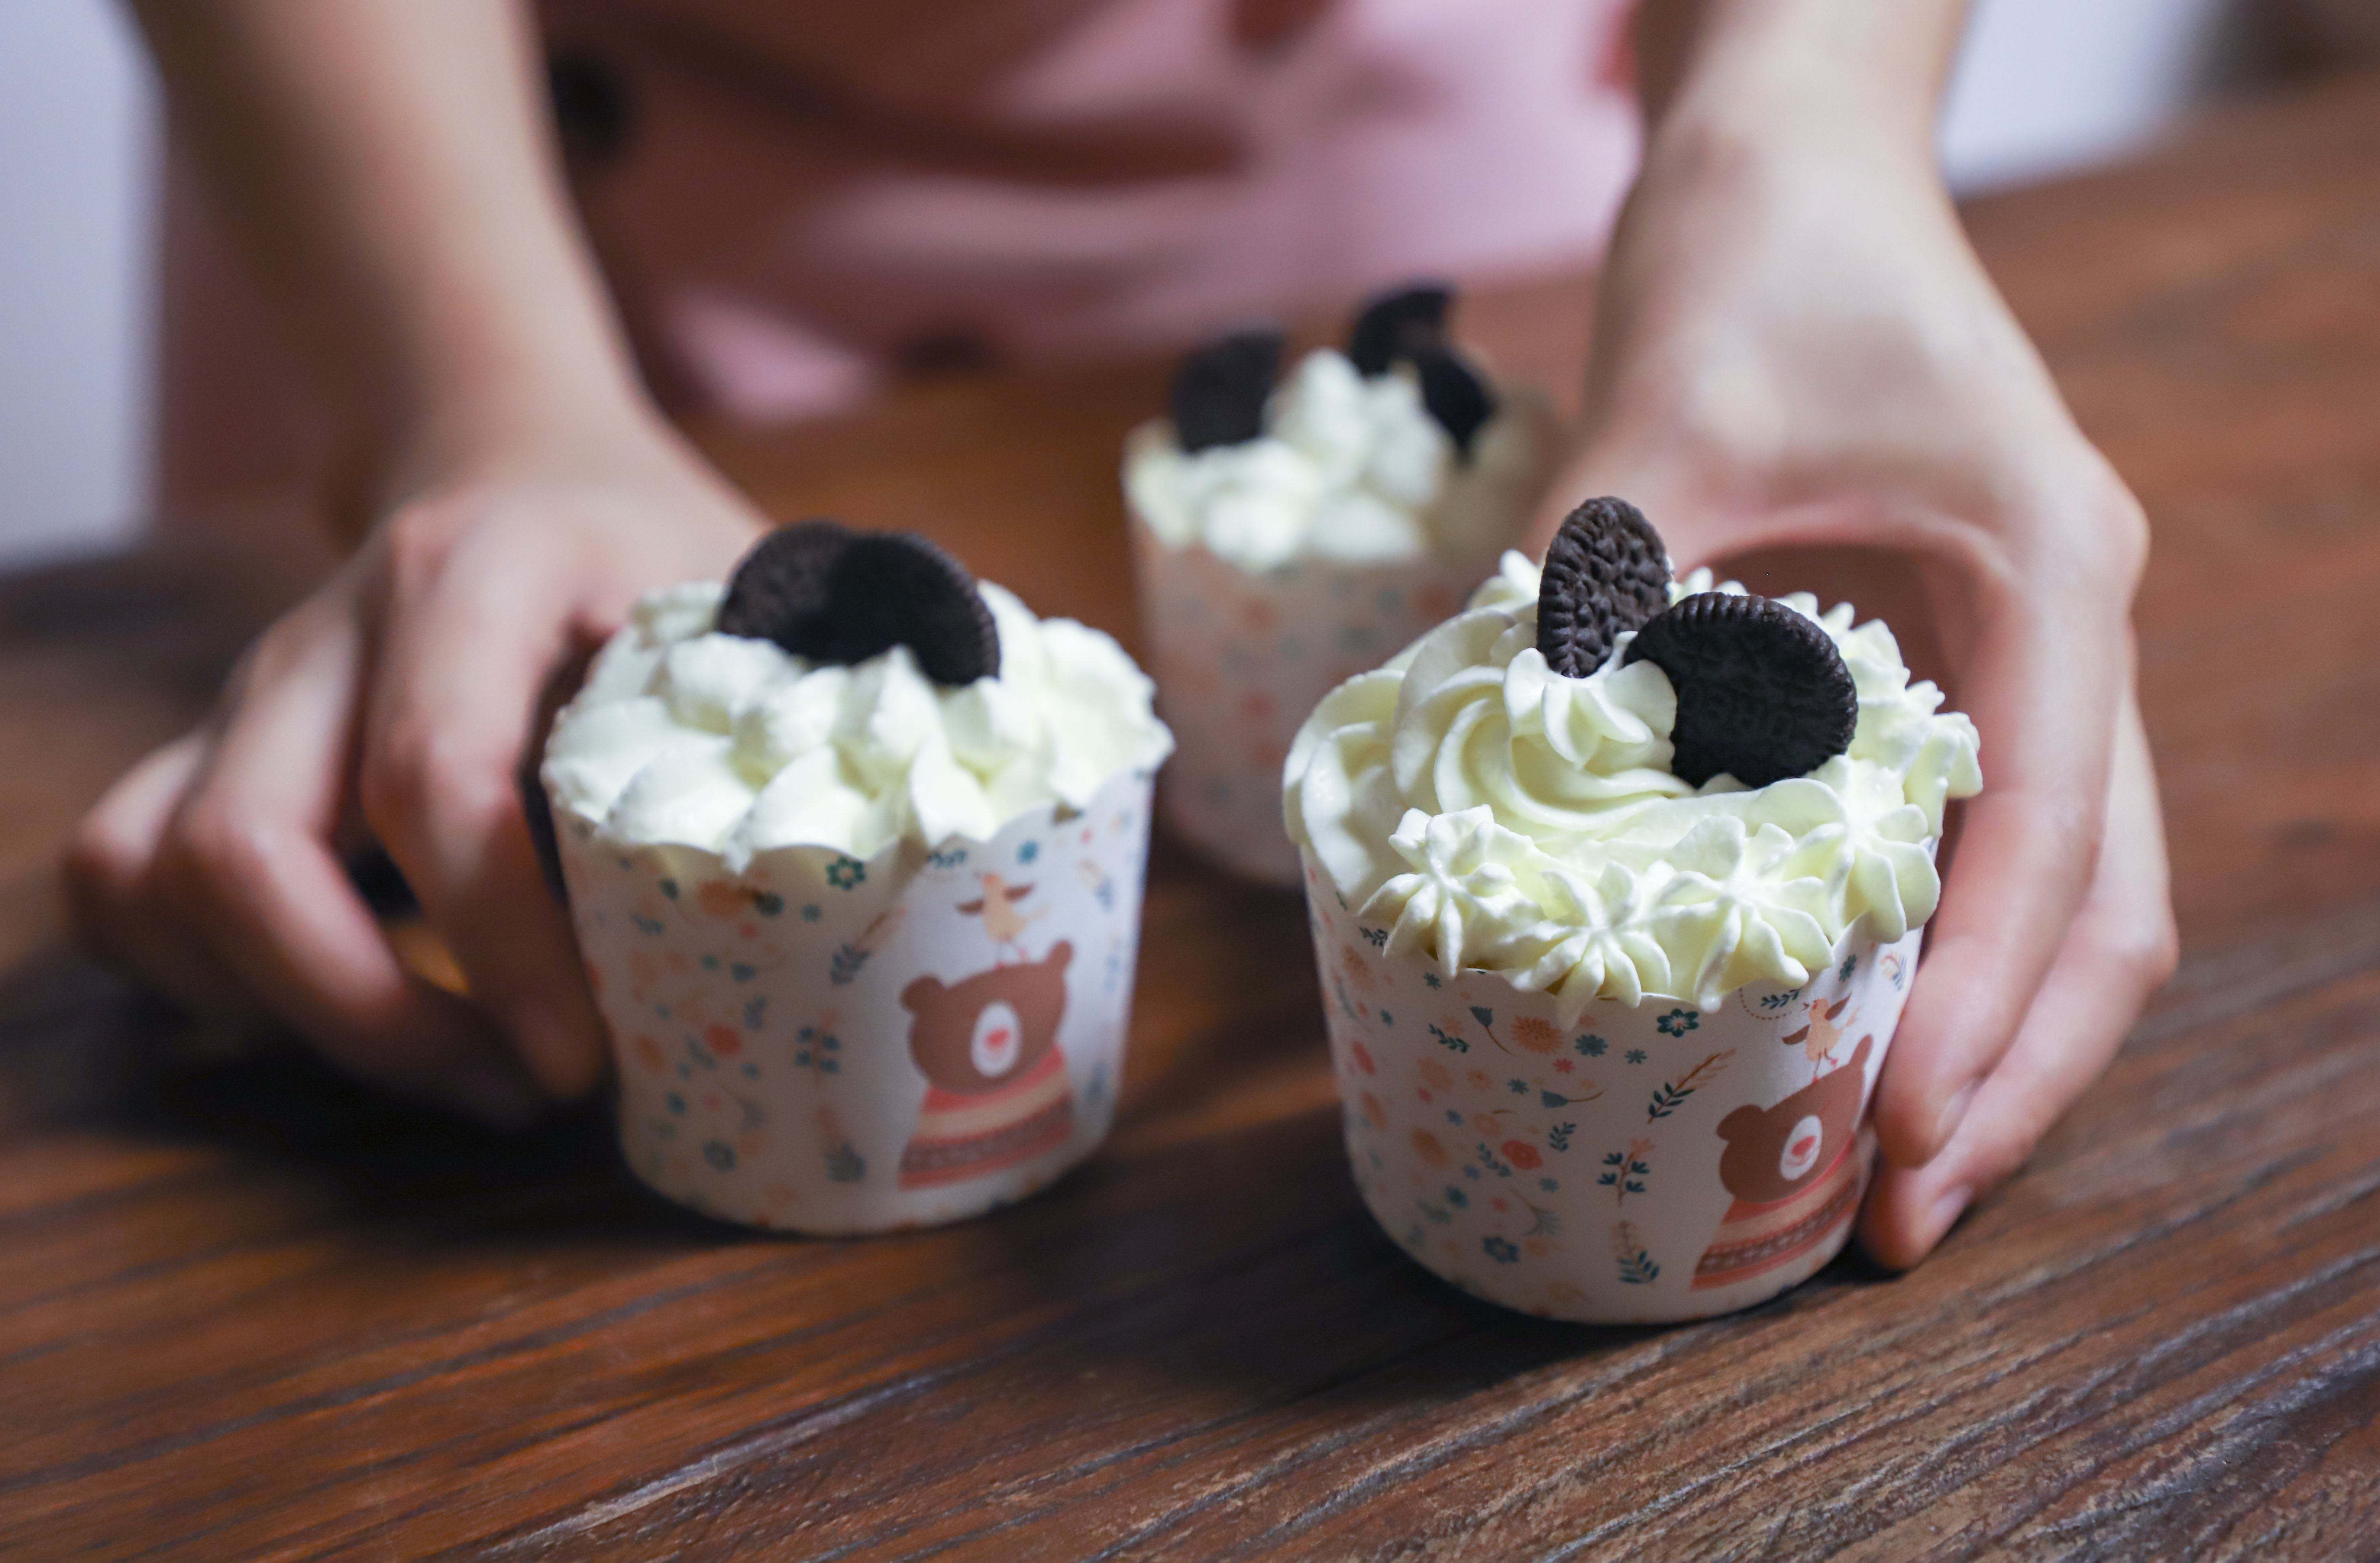 Person Holding Cupcakes